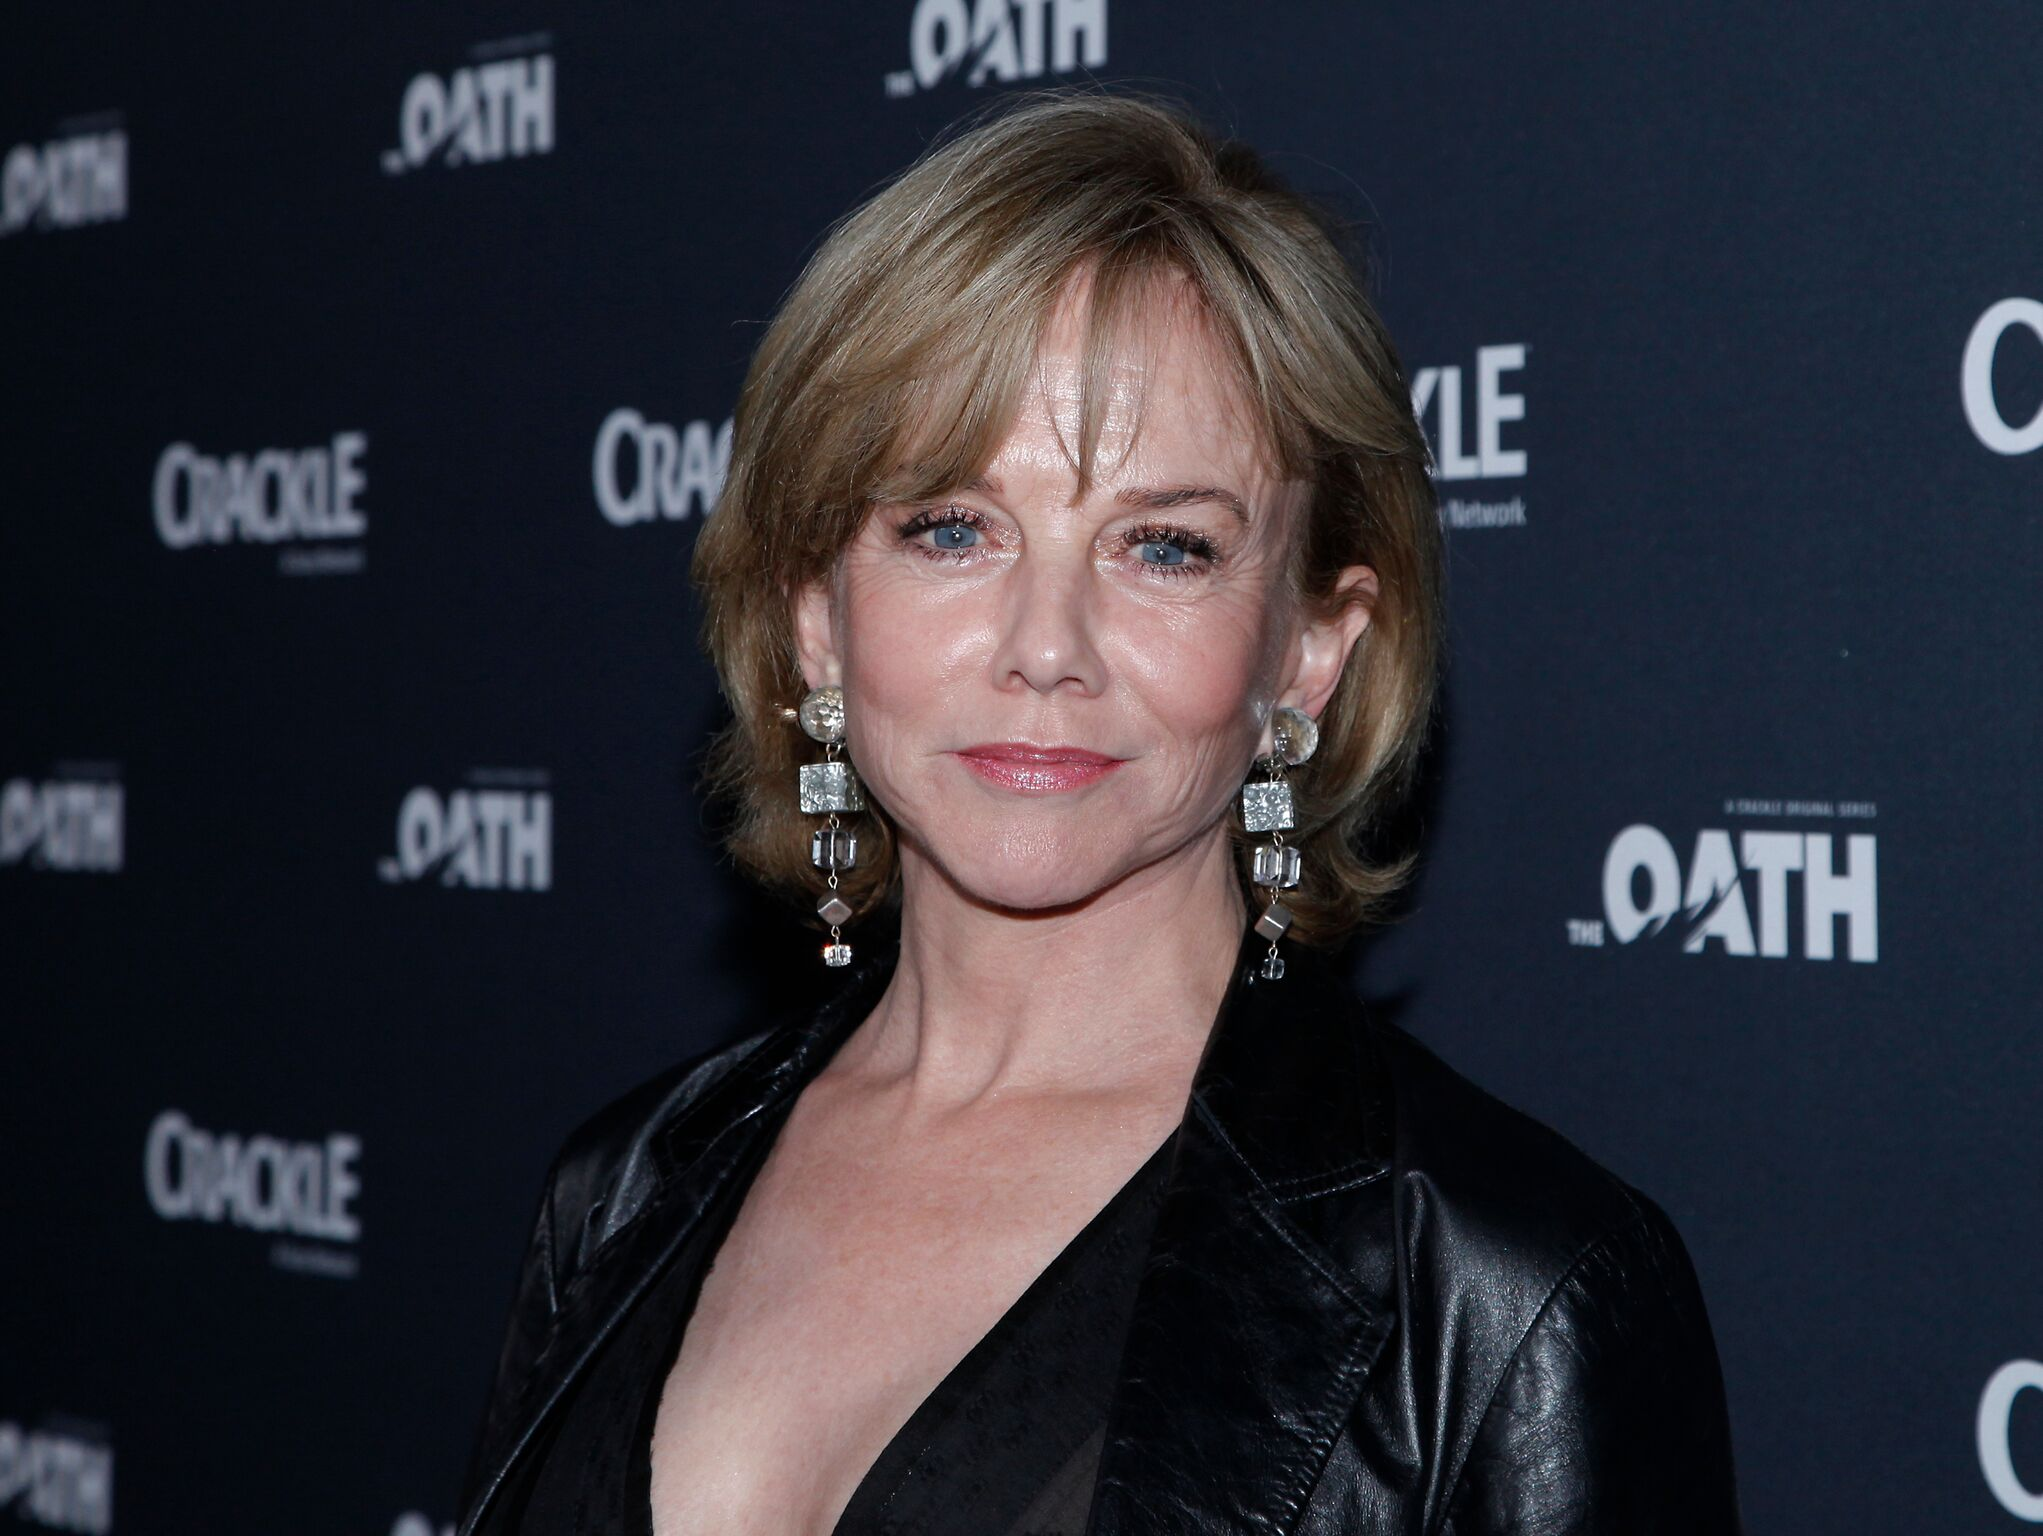 Linda Purl attends the premiere of Crackle's 'The Oath' at Sony Pictures Studios  | Getty Images